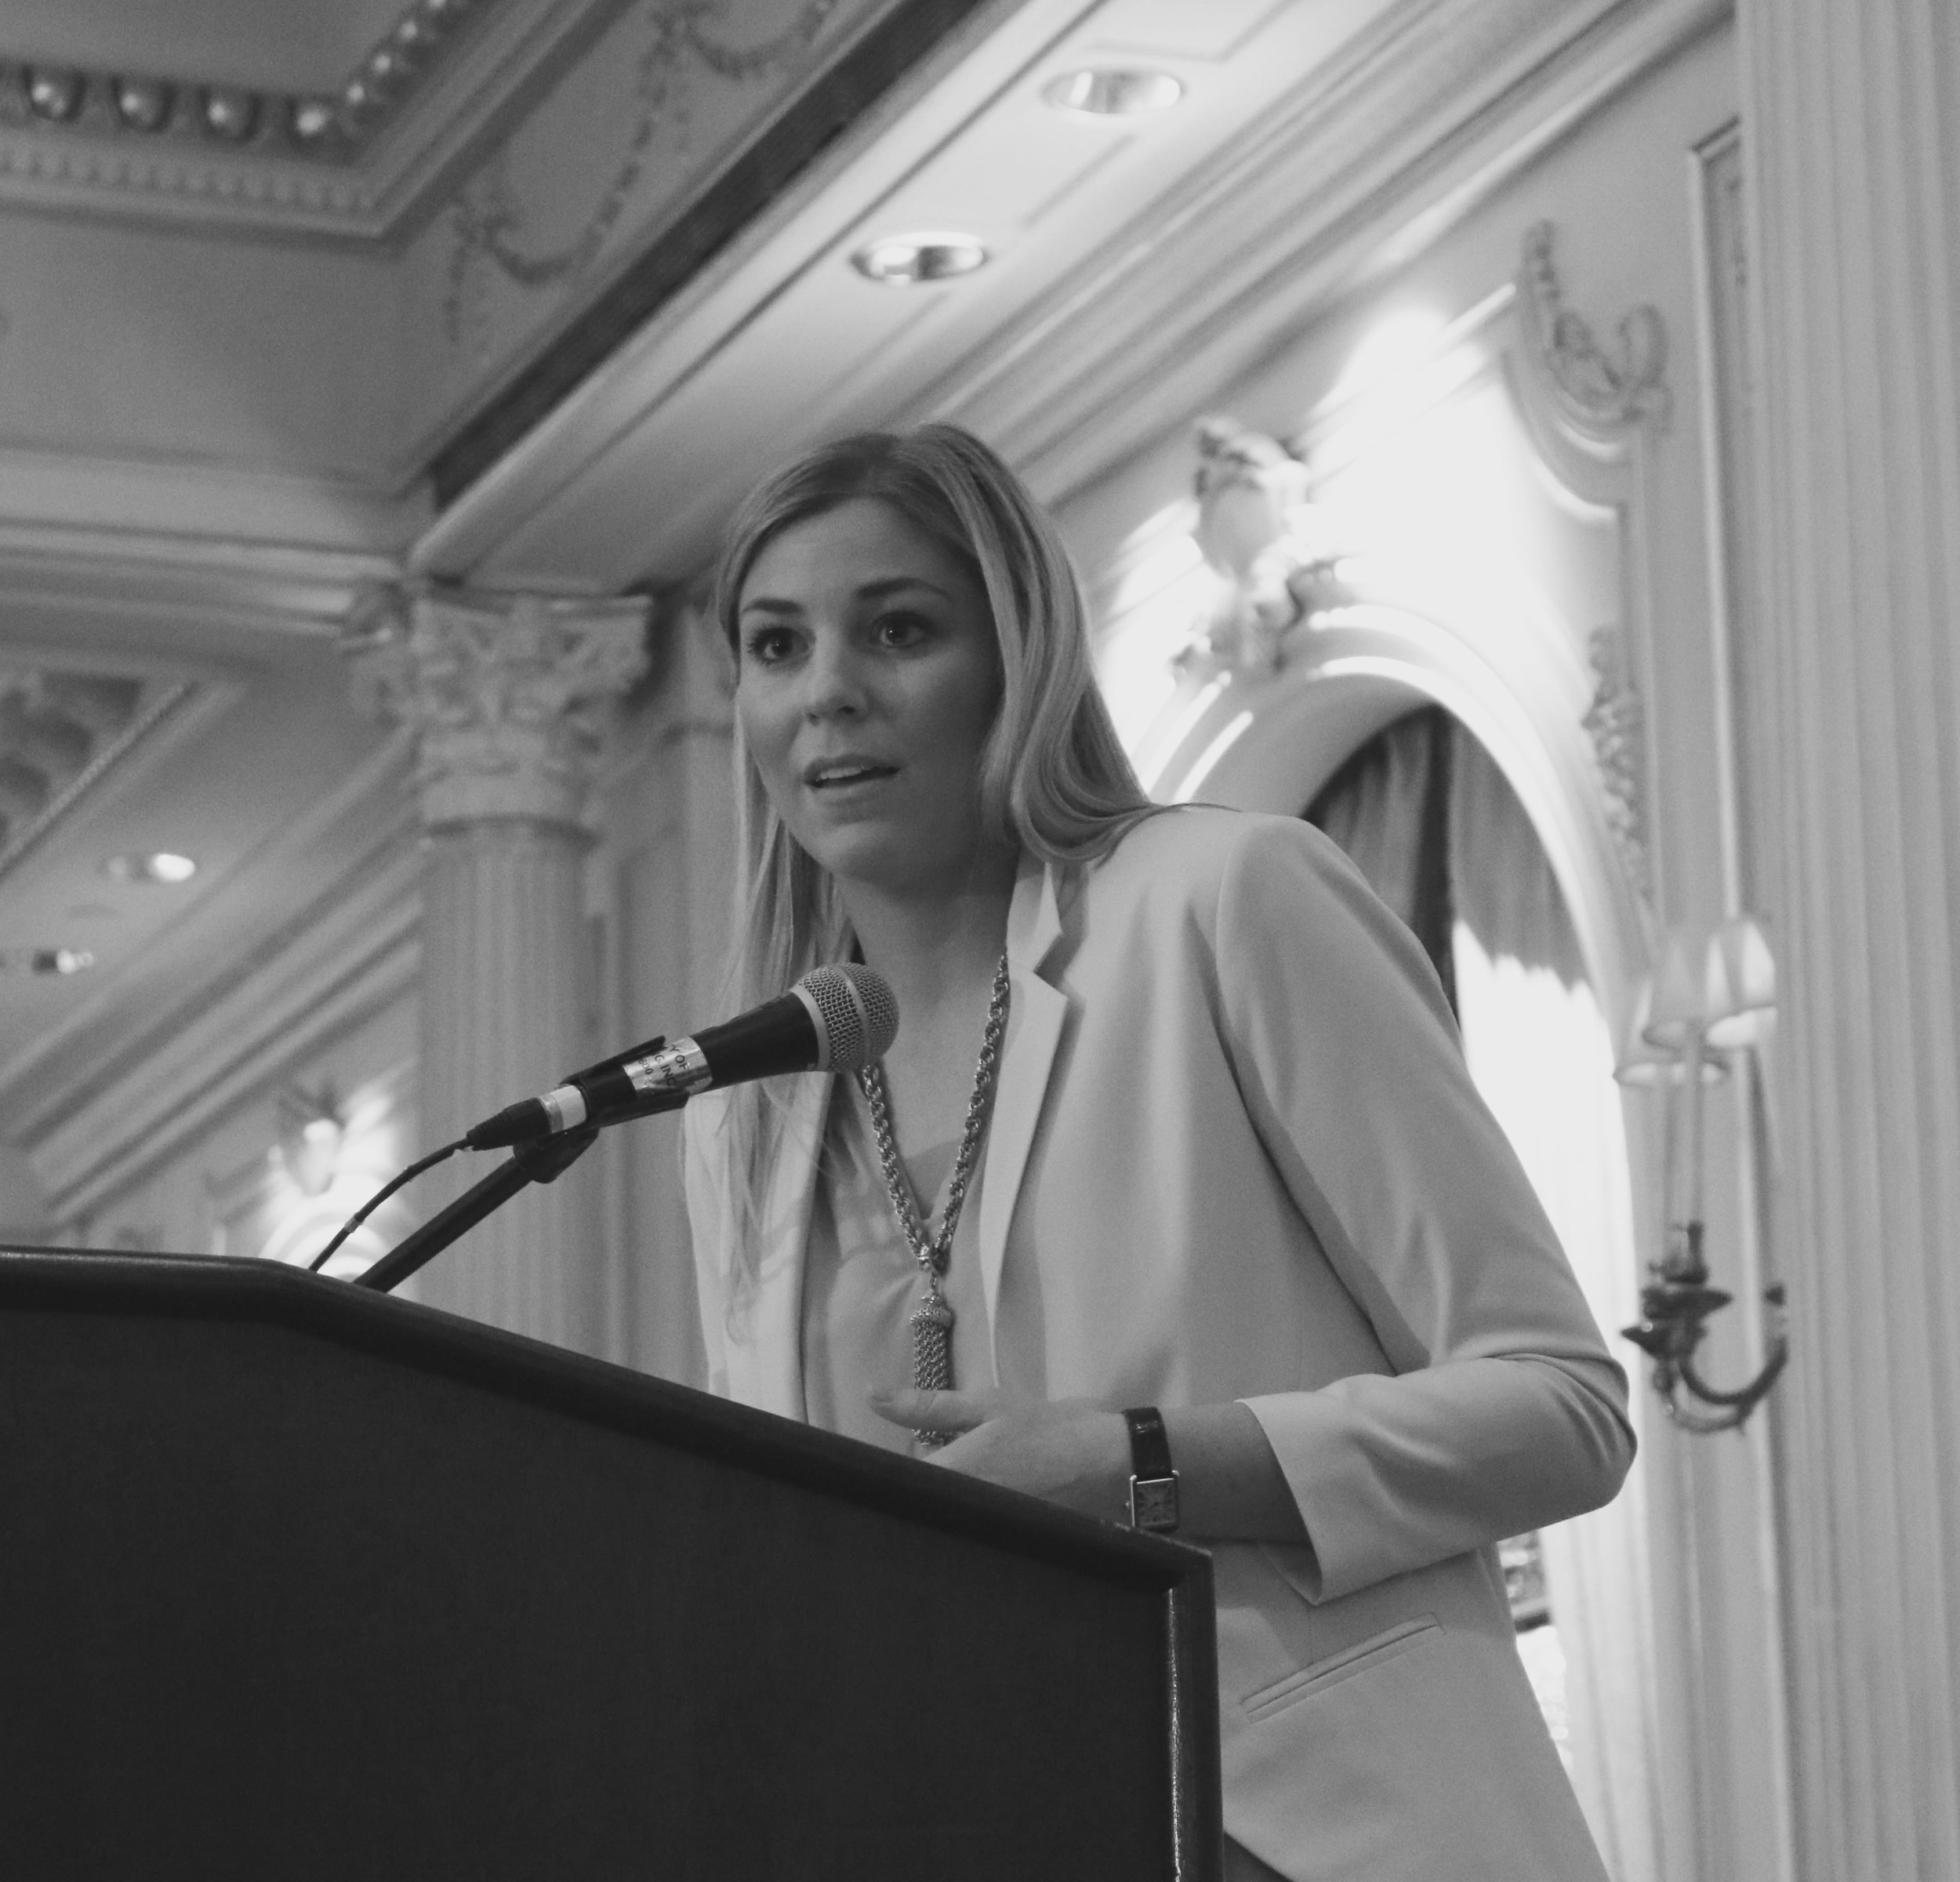 GlamourGals founder and CEO Rachel Doyle speaking during the awards ceremony